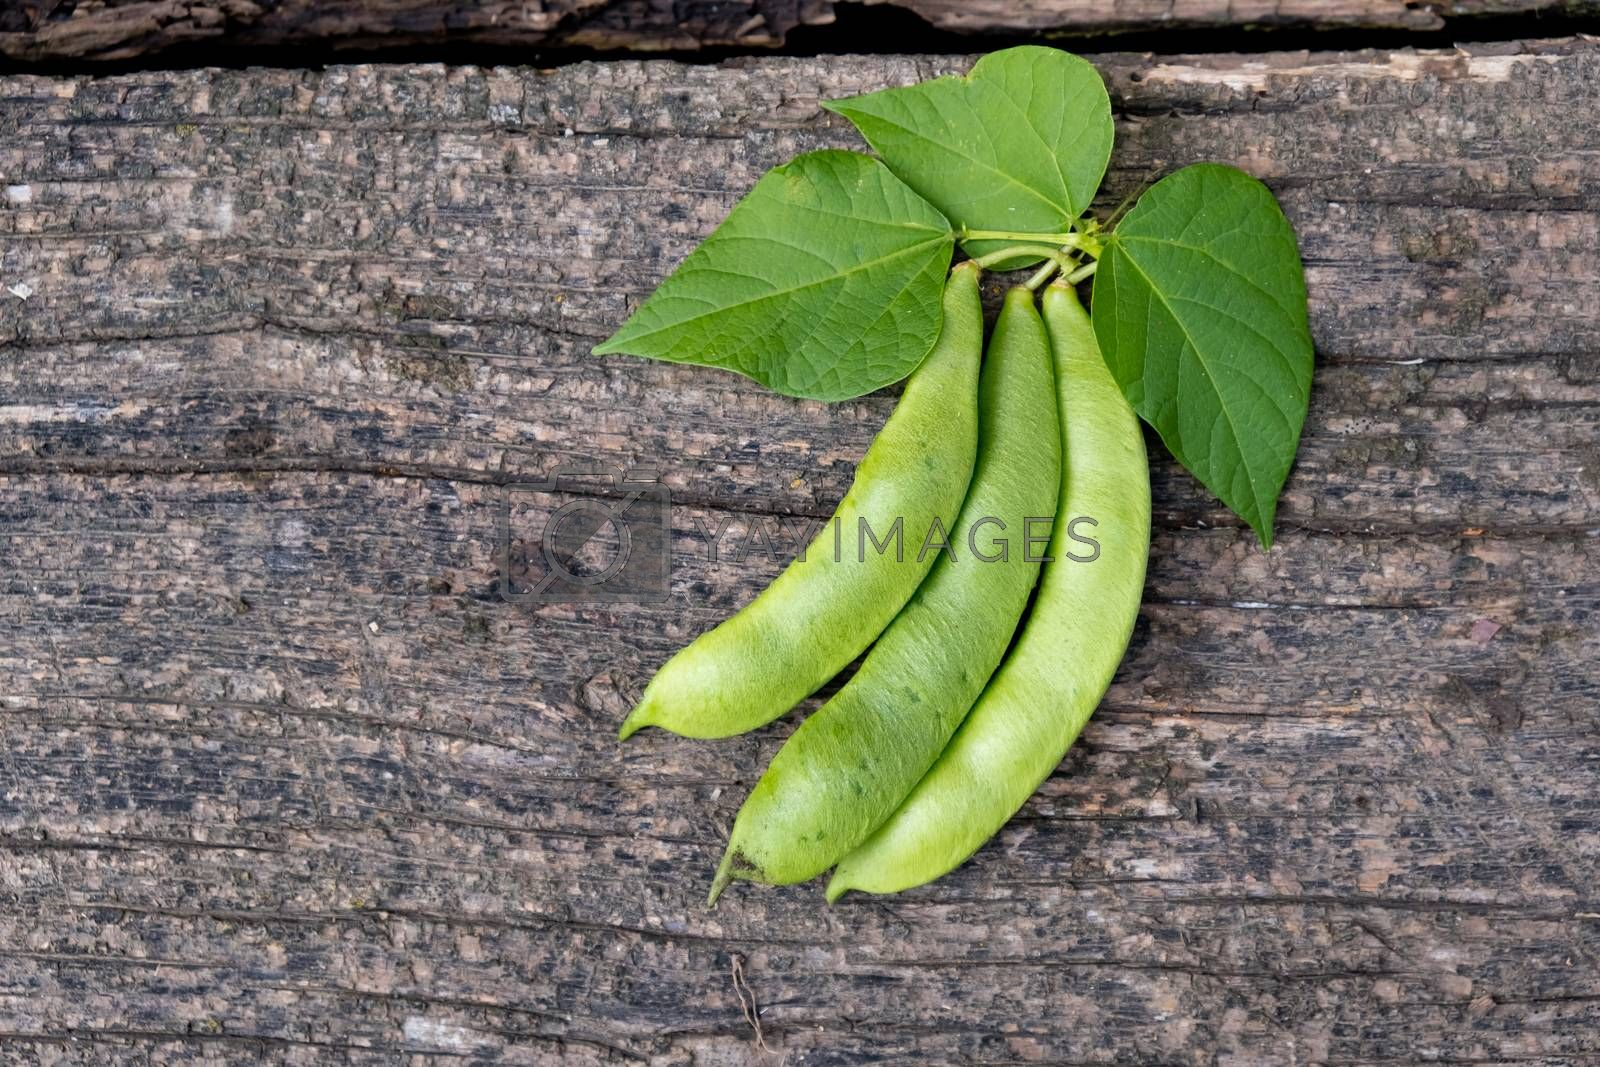 Raw green beans on wood background. Closeup.